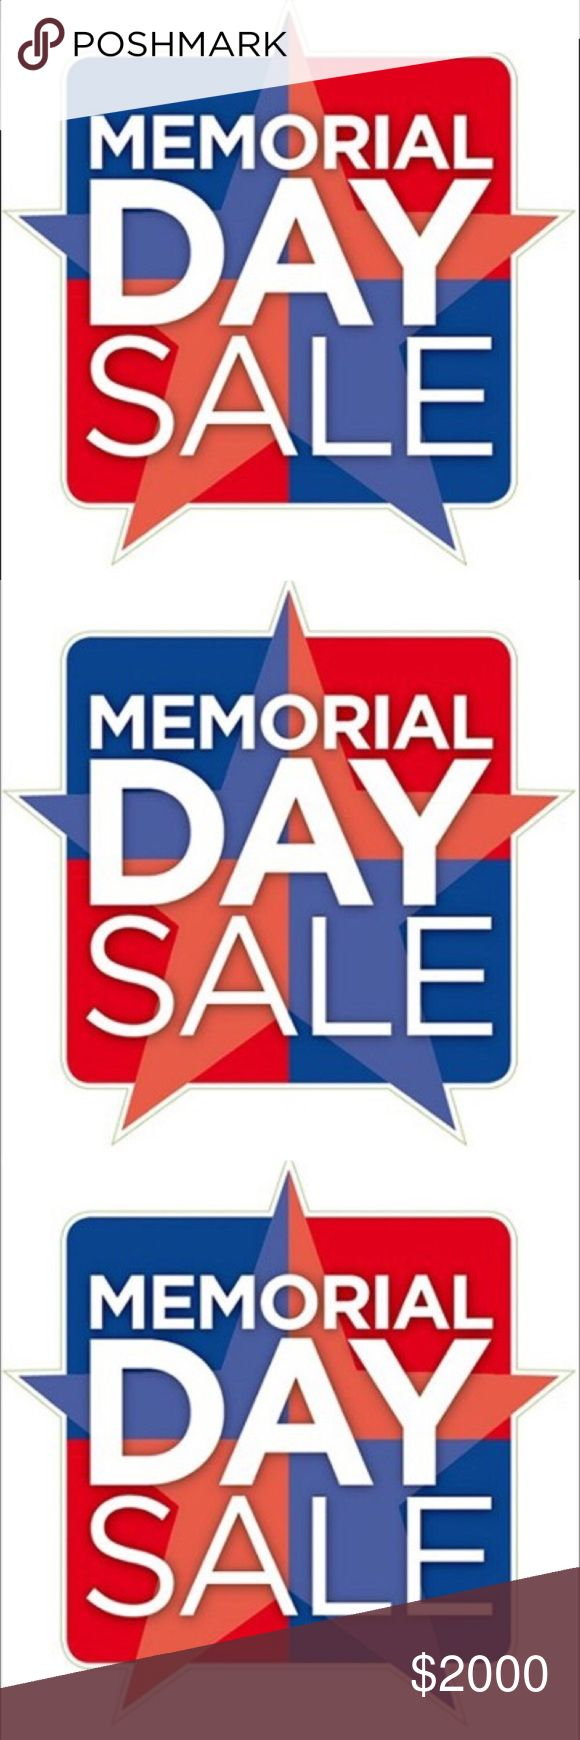 🇱🇷🇱🇷MEMORIAL DAY NAME YOUR PRICE SALE🇱🇷🇱🇷 🇱🇷🇱🇷MEMORIAL DAY SALE🇱🇷🇱🇷NAME YOUR PRICE SALE🇱🇷🇱🇷MAKE ME AN OFFER AND I WILL EITGER ACCEPT OR COUNTER WITH MY BEST AND FINAL OFFER🇱🇷🇱🇷 Other